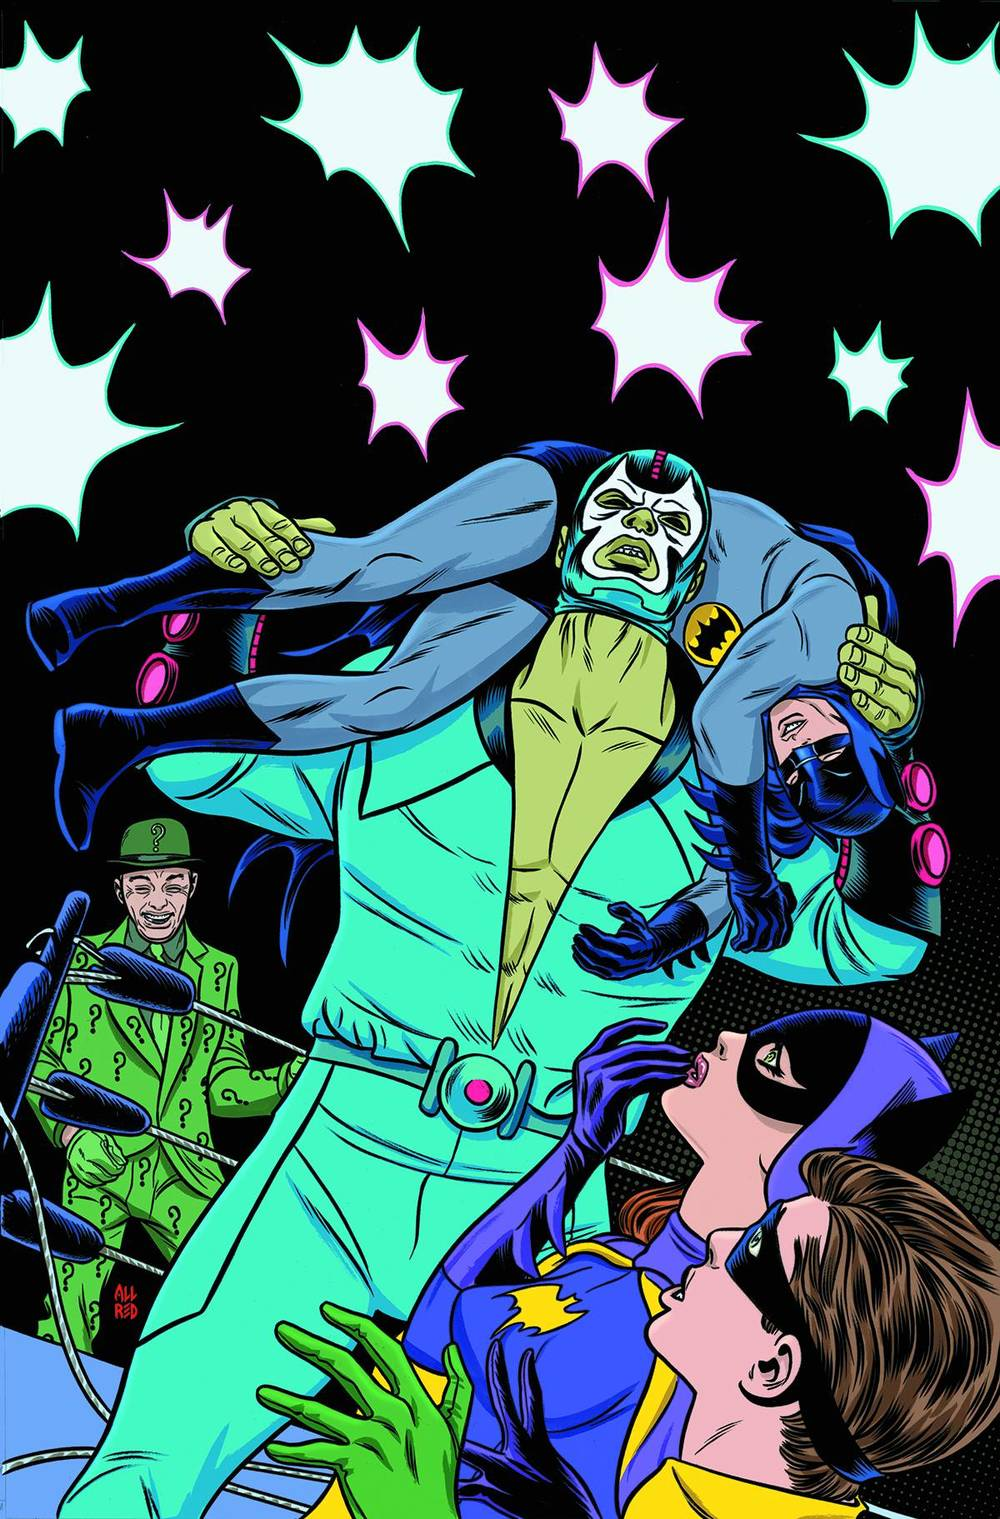 Cover Art by Mike Allred